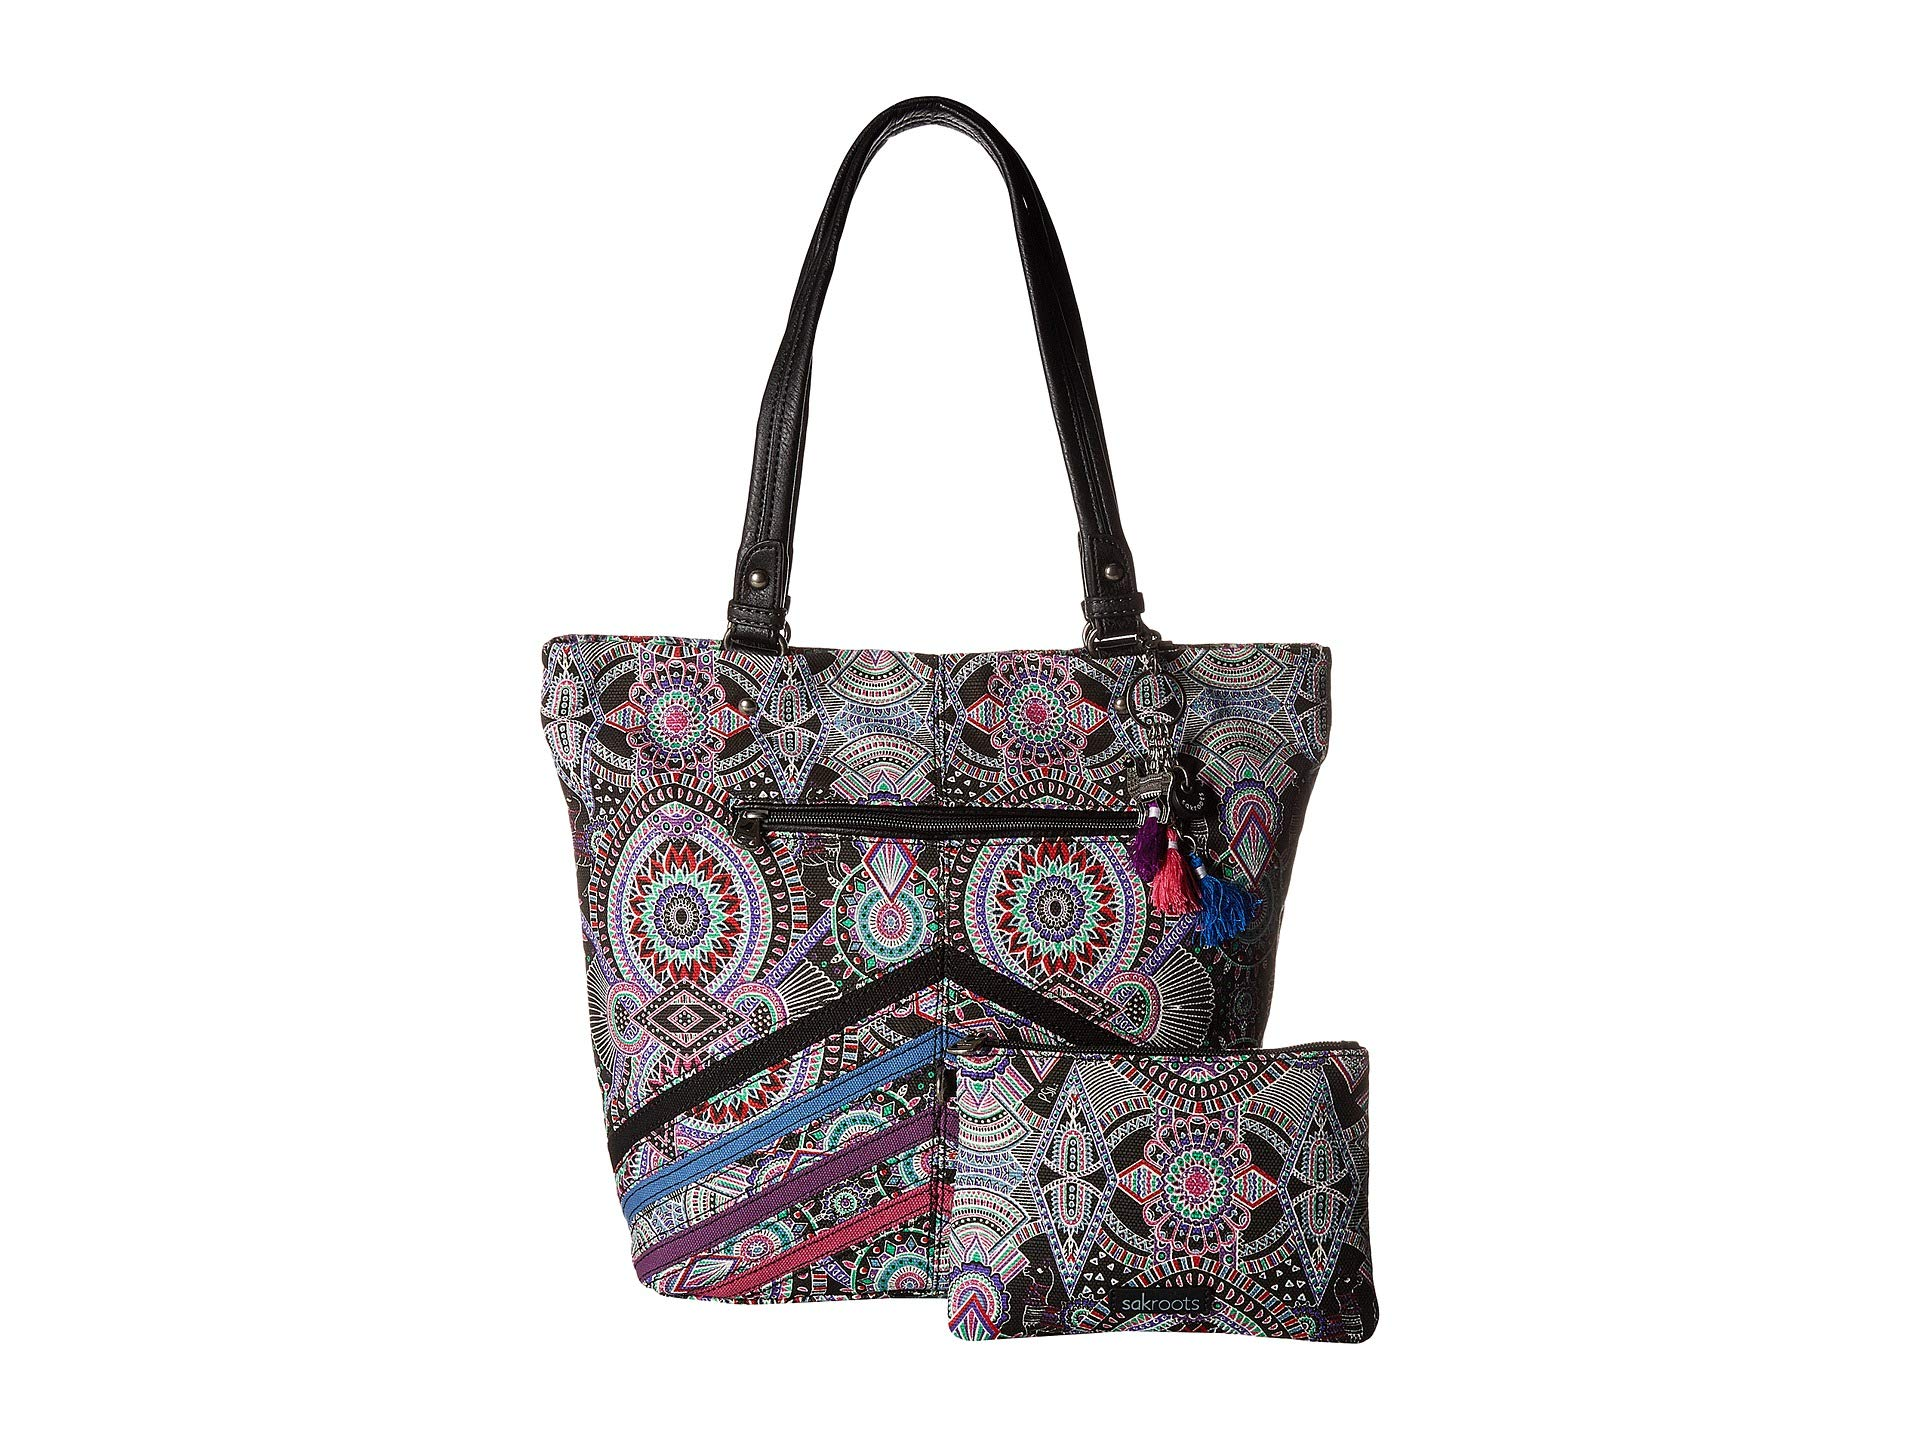 Onyx Tote Sakroots Tote Tote Sakroots Wanderlust Aspen Onyx Sakroots Aspen Wanderlust Aspen 6Iqqxavw